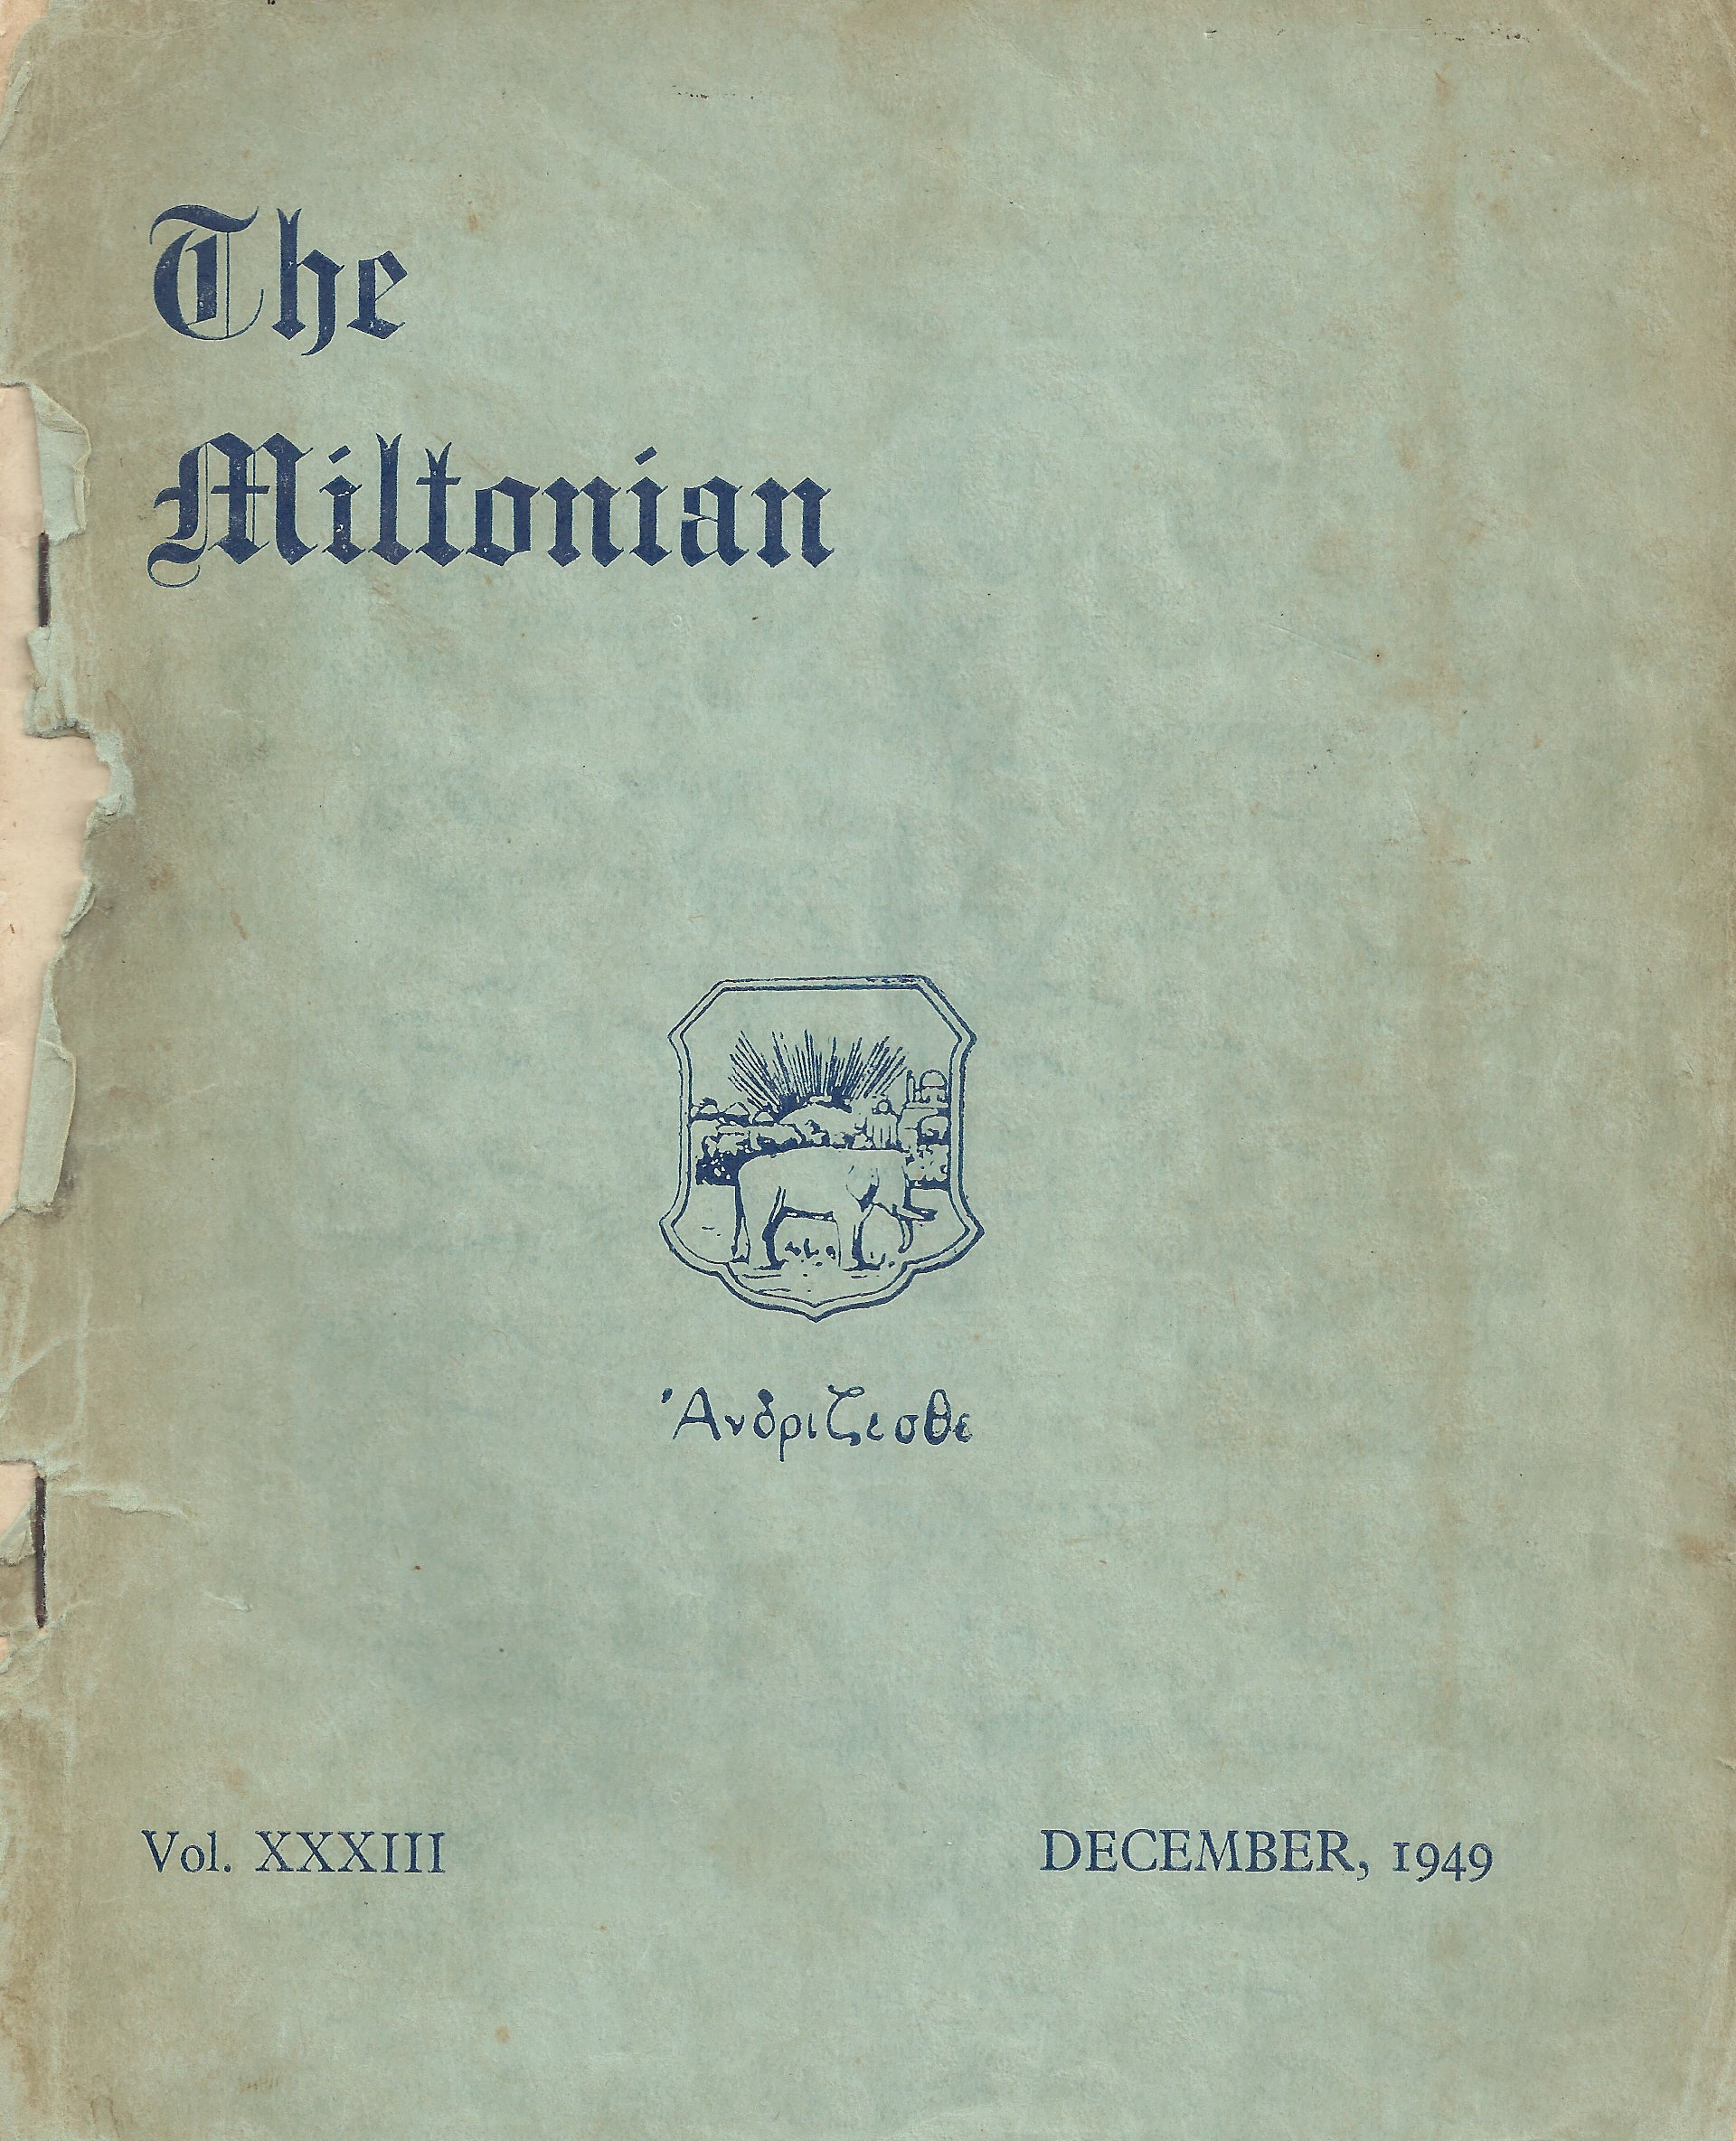 file:///C:/Users/adrian/Documents/My Web Sites/oldmiltonians/themiltonian_images_cover/1949_dec_vol_XXXIII.jpg